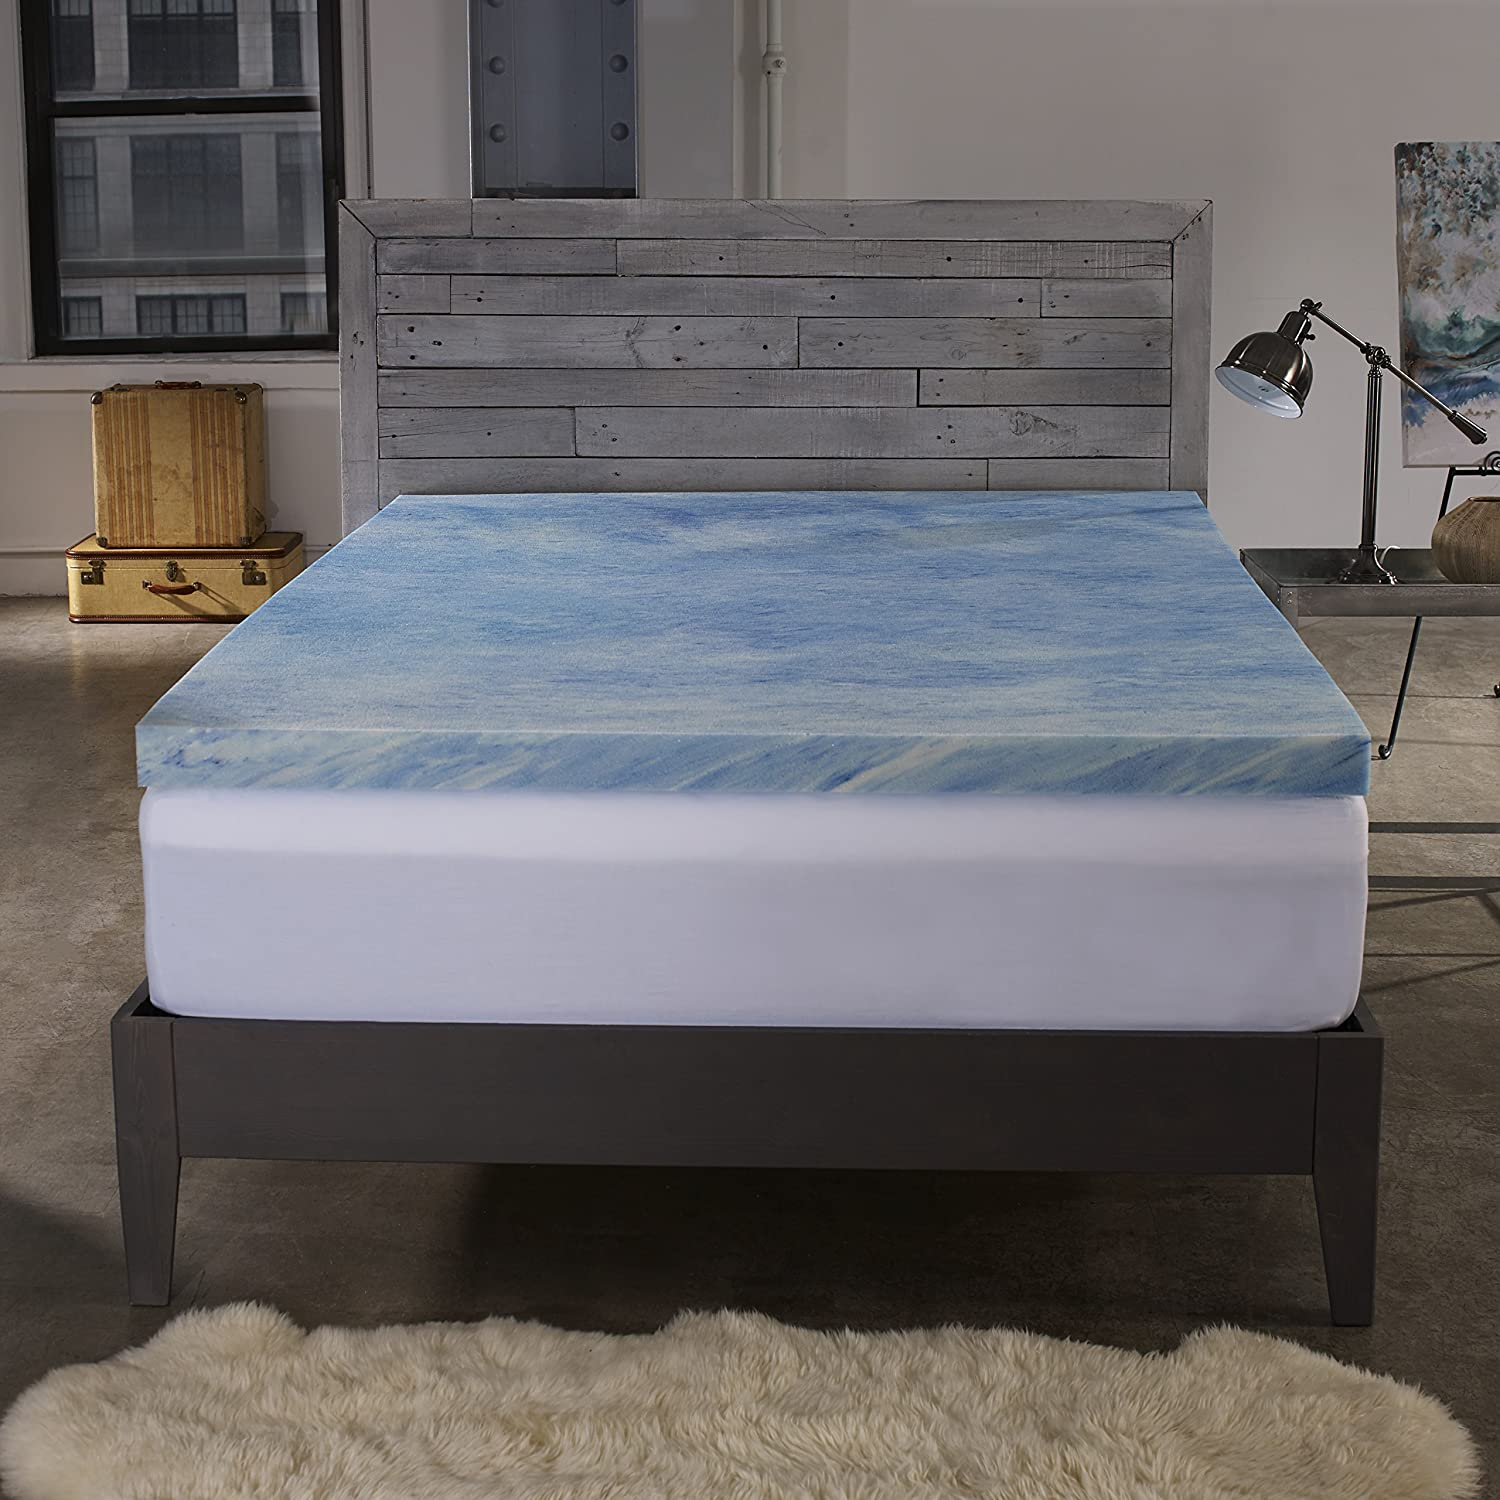 Sleep Innovations 2.5-inch Gel Memory Foam Mattress Topper with 100% Cotton Cover, Made in The USA with a 10-Year Warranty - King Size